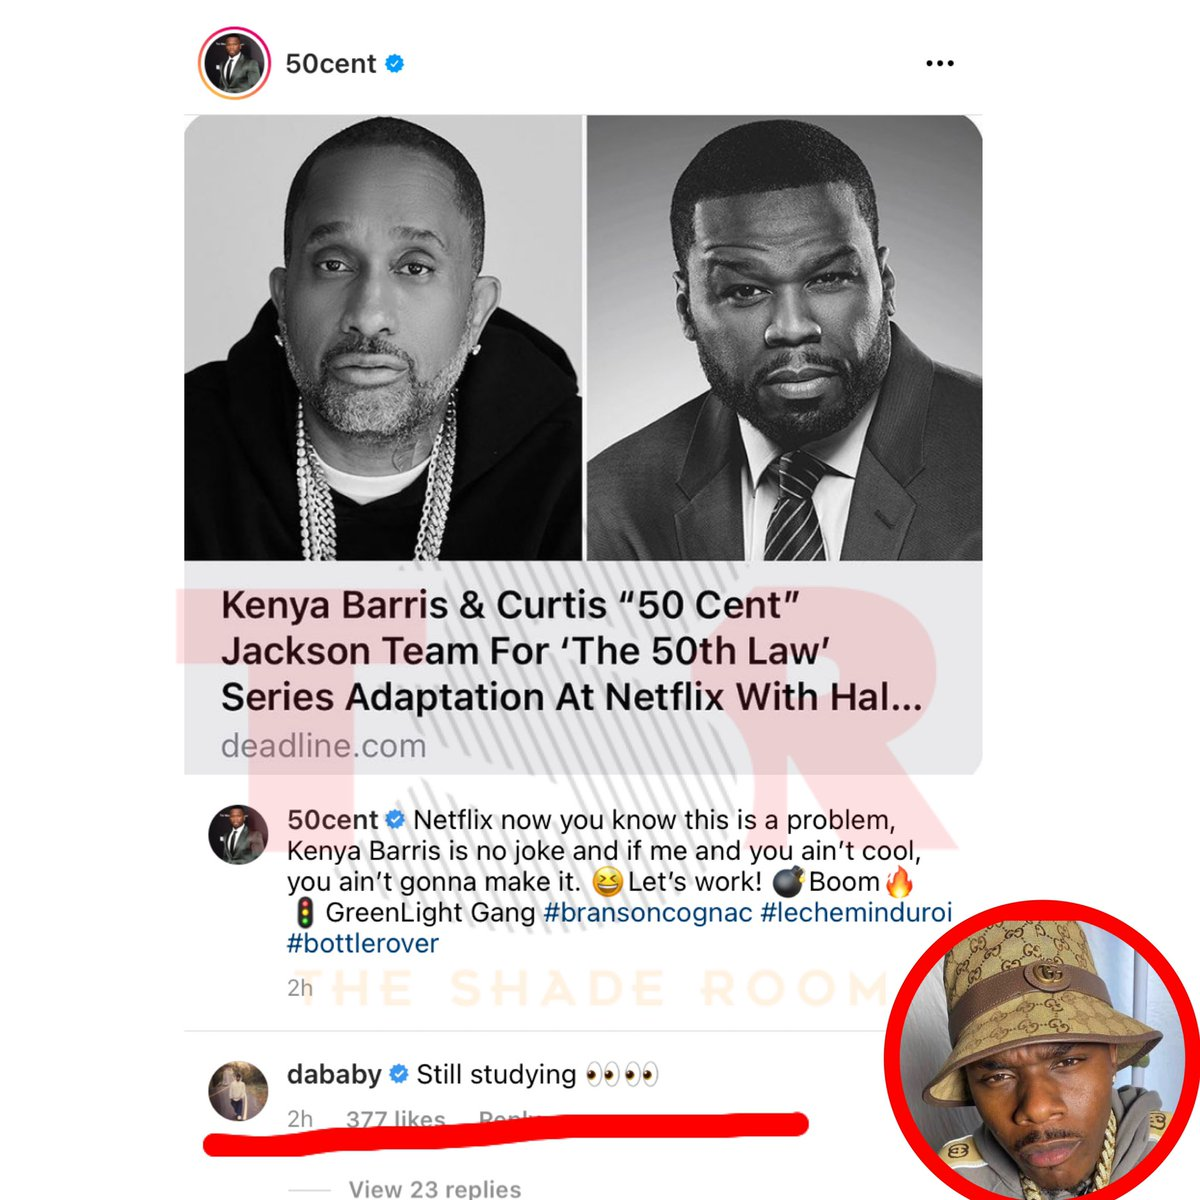 It looks like DaBaby wants to be a part of Kenya Barris and 50 Cent's new Netflix series #The50thLaw 👀